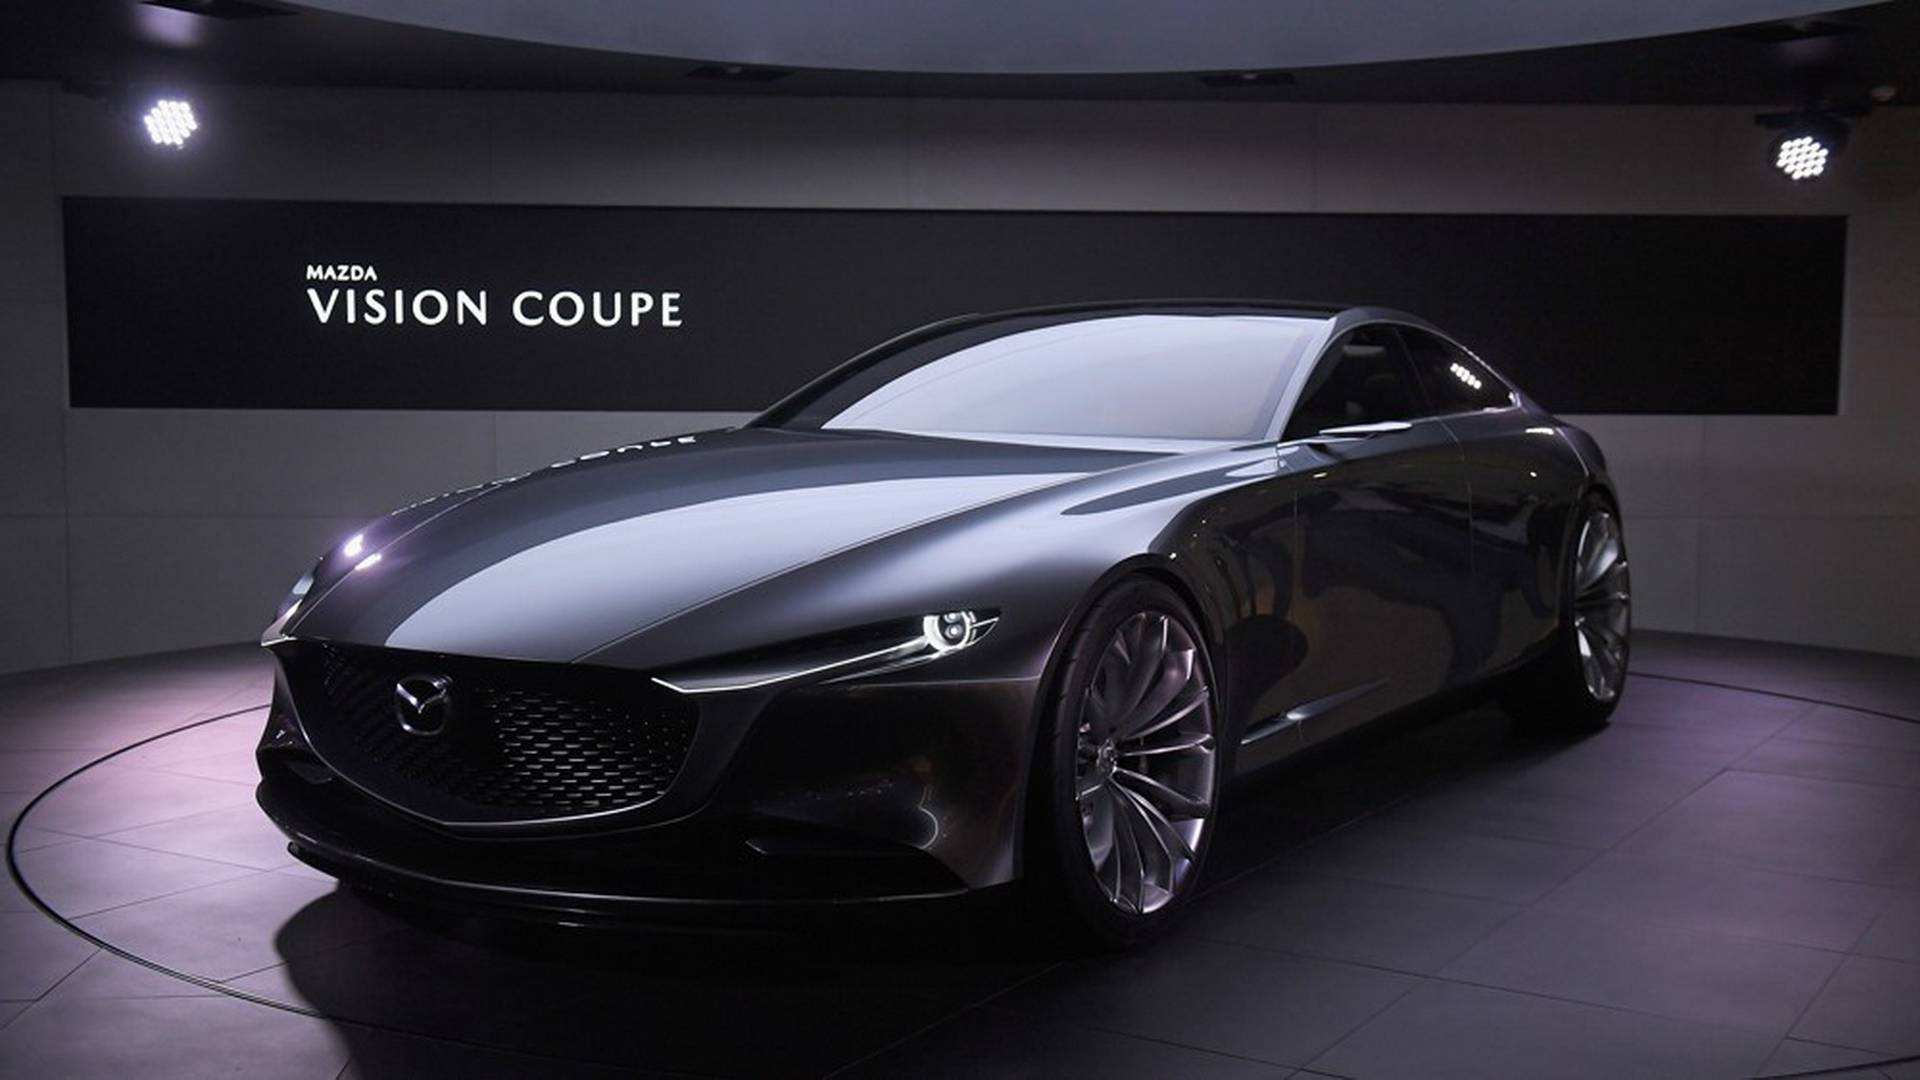 71 The Mazda 6 Vision Coupe 2020 Rumors